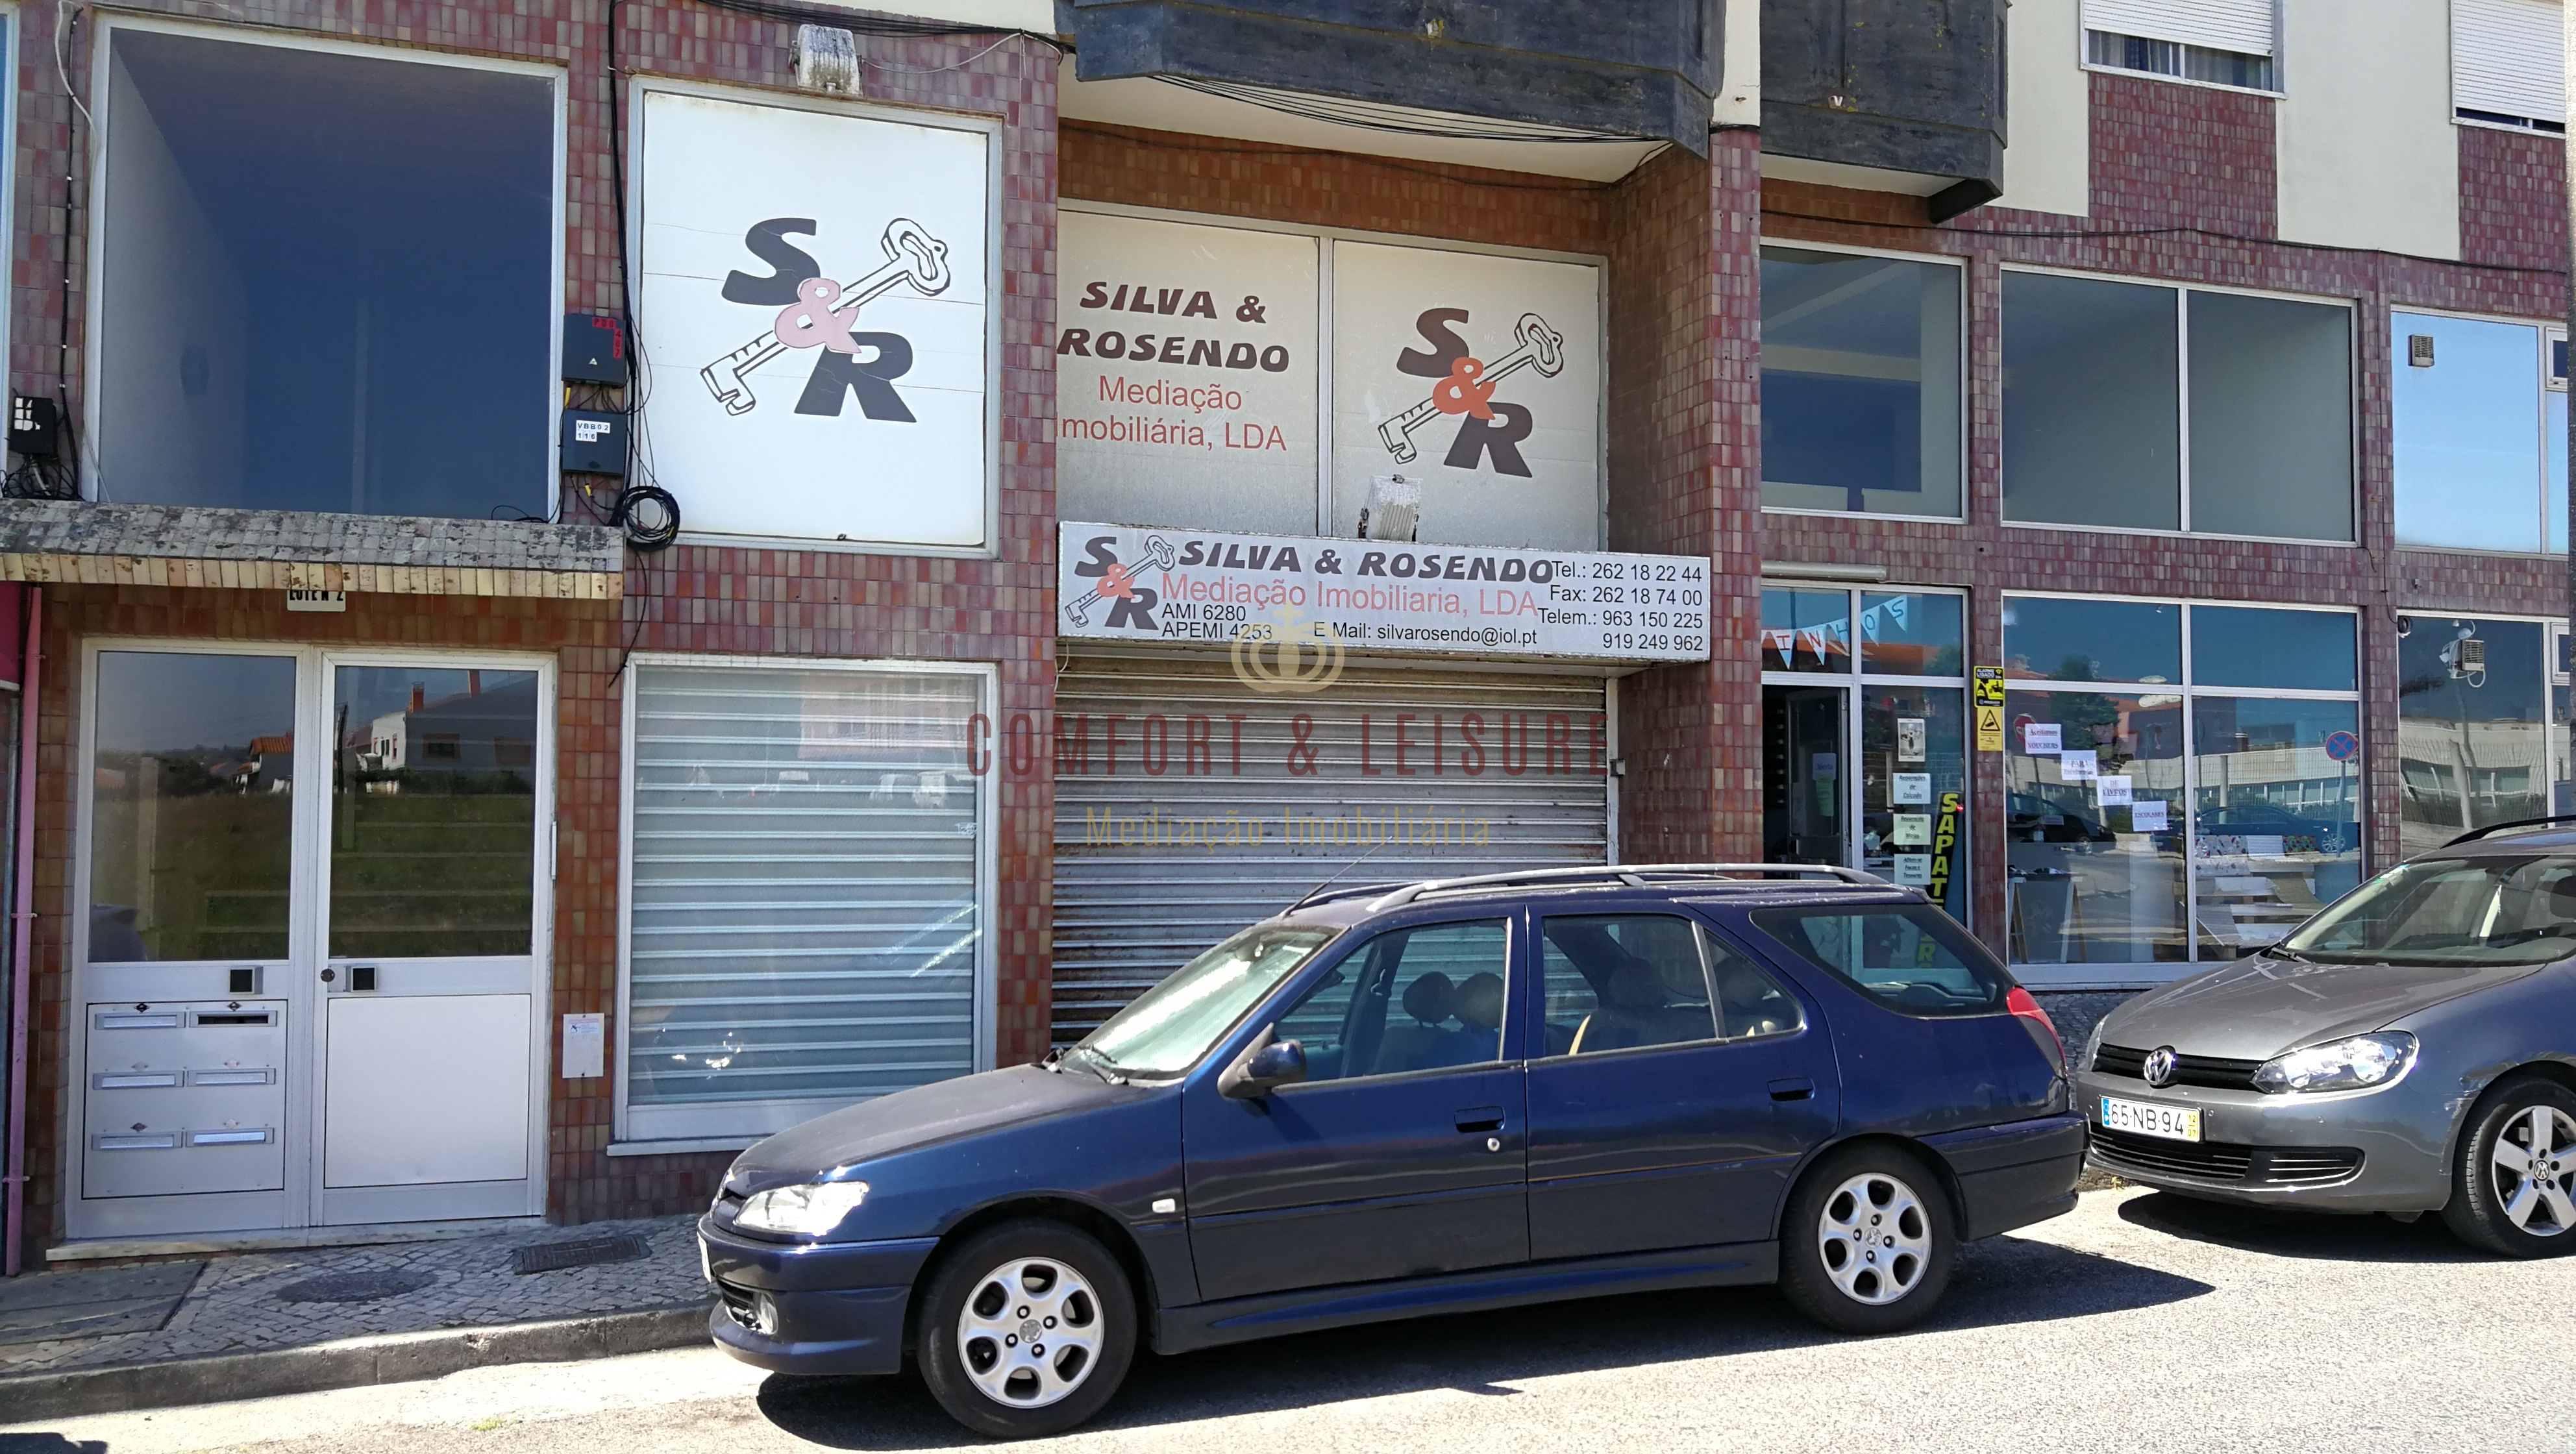 Commercial space with 100 sqm in Bombarral